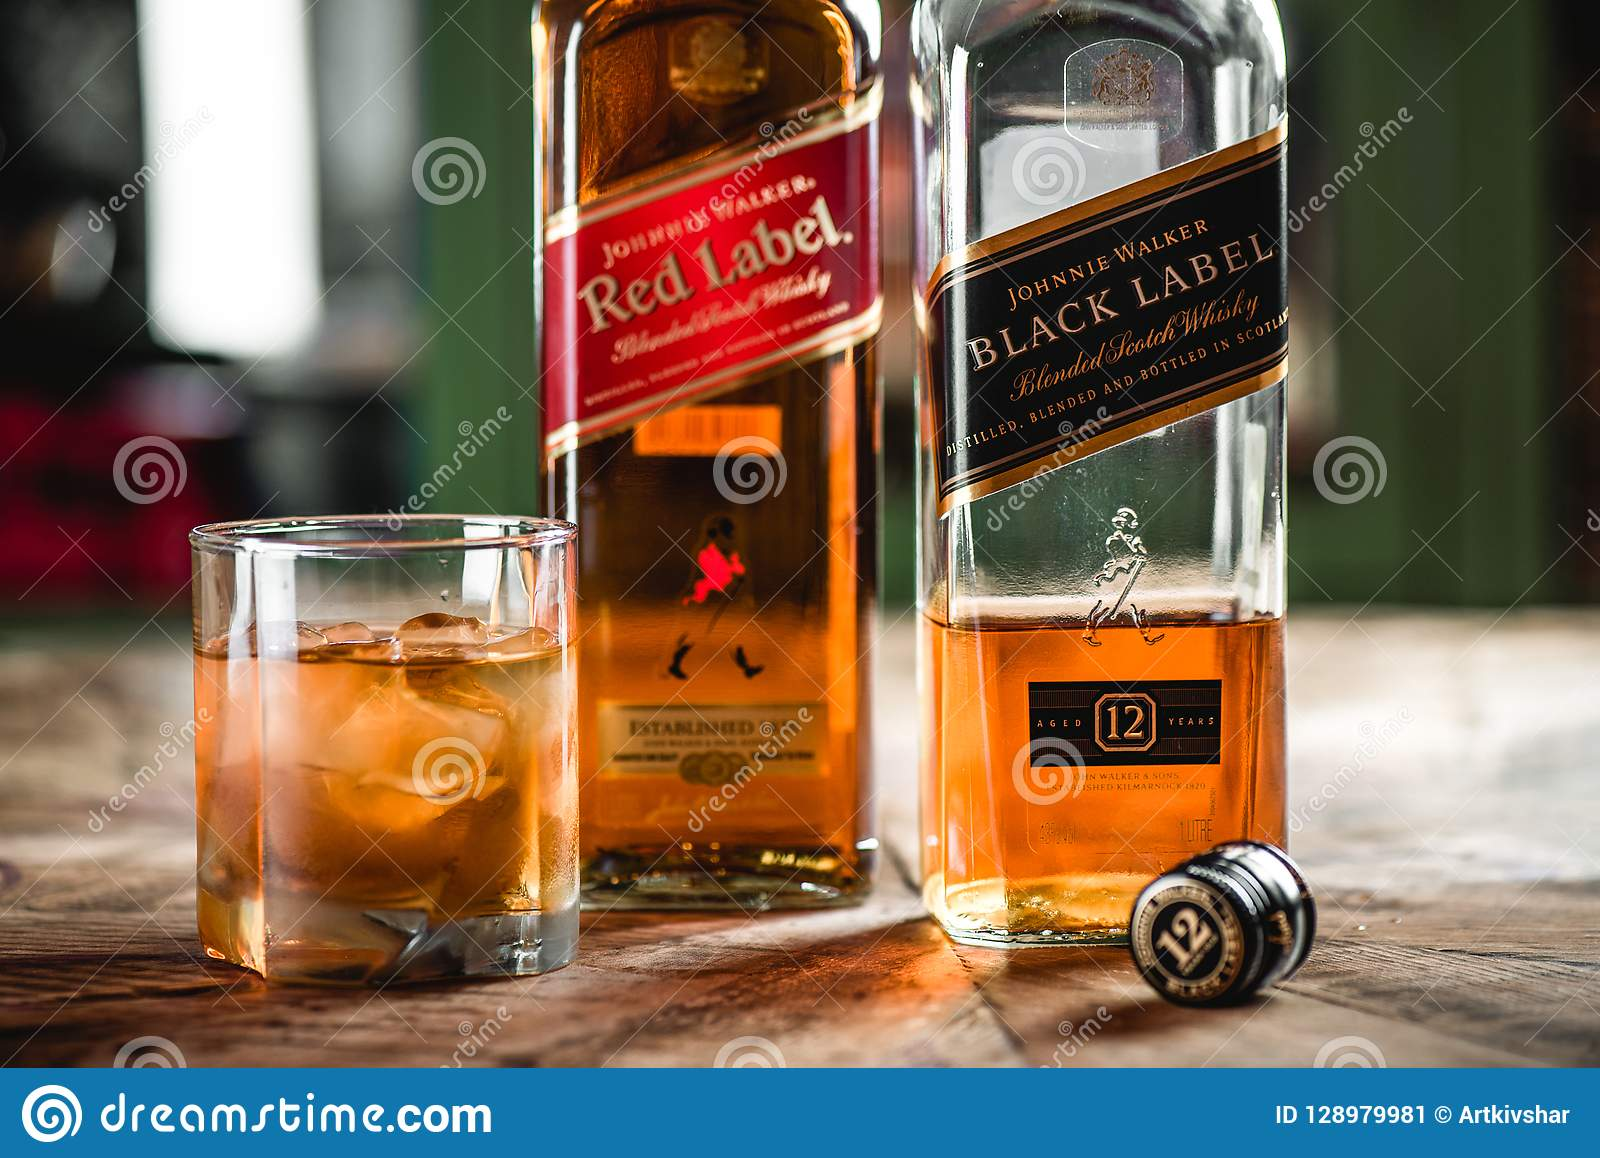 Red Label And Black Label Whiskey Bottles And Glass With Ice